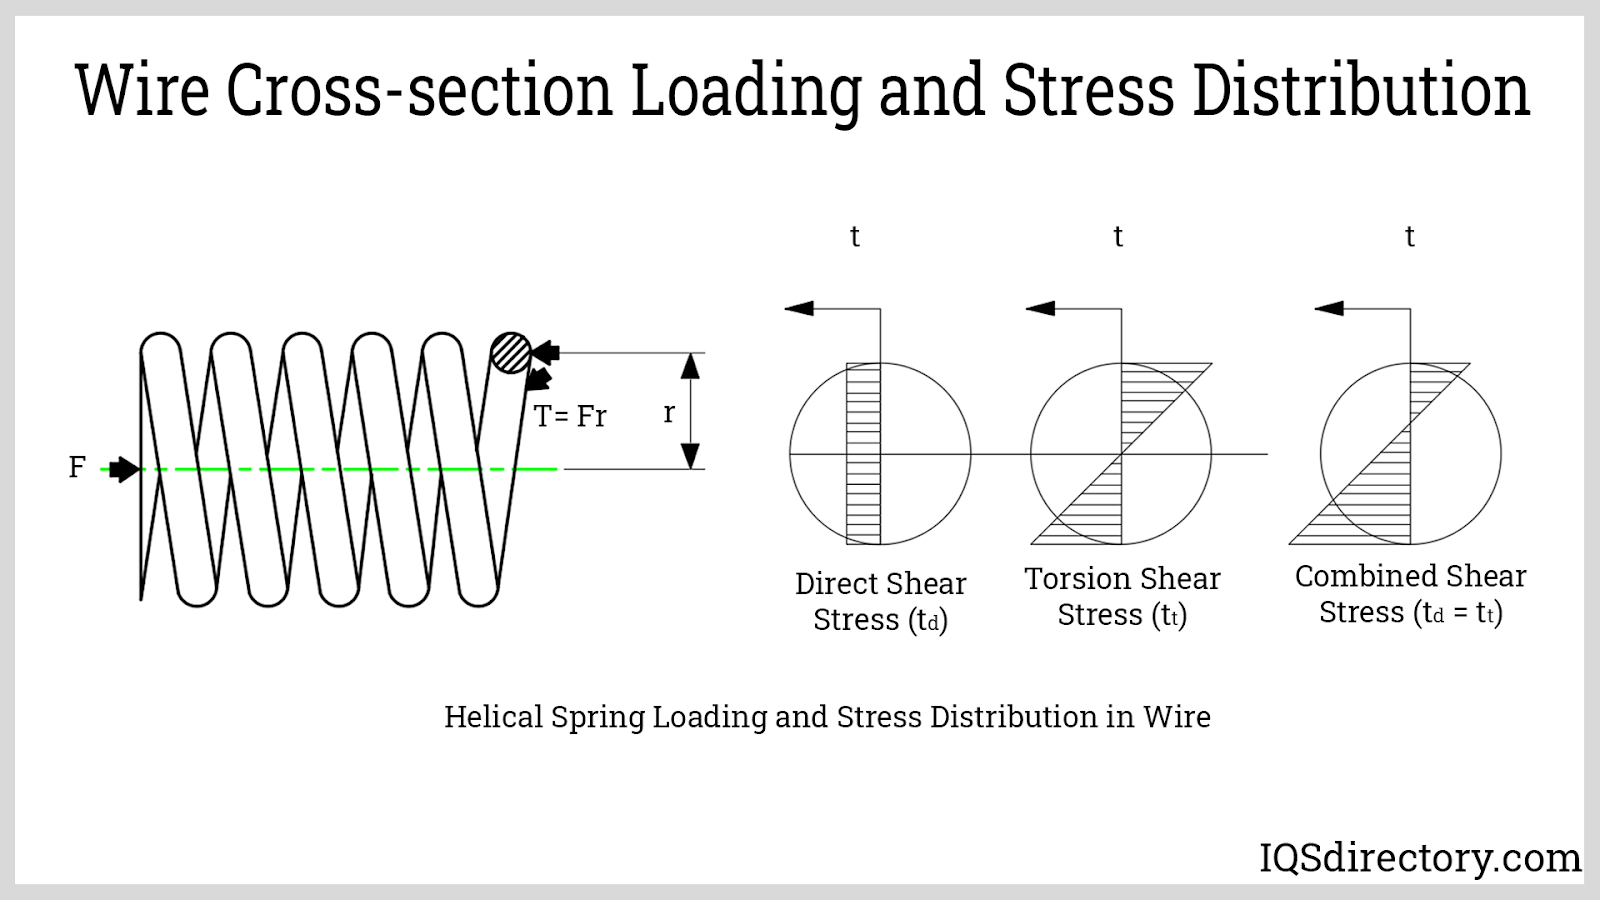 Wire Cross-section Loading and Stress Distribution